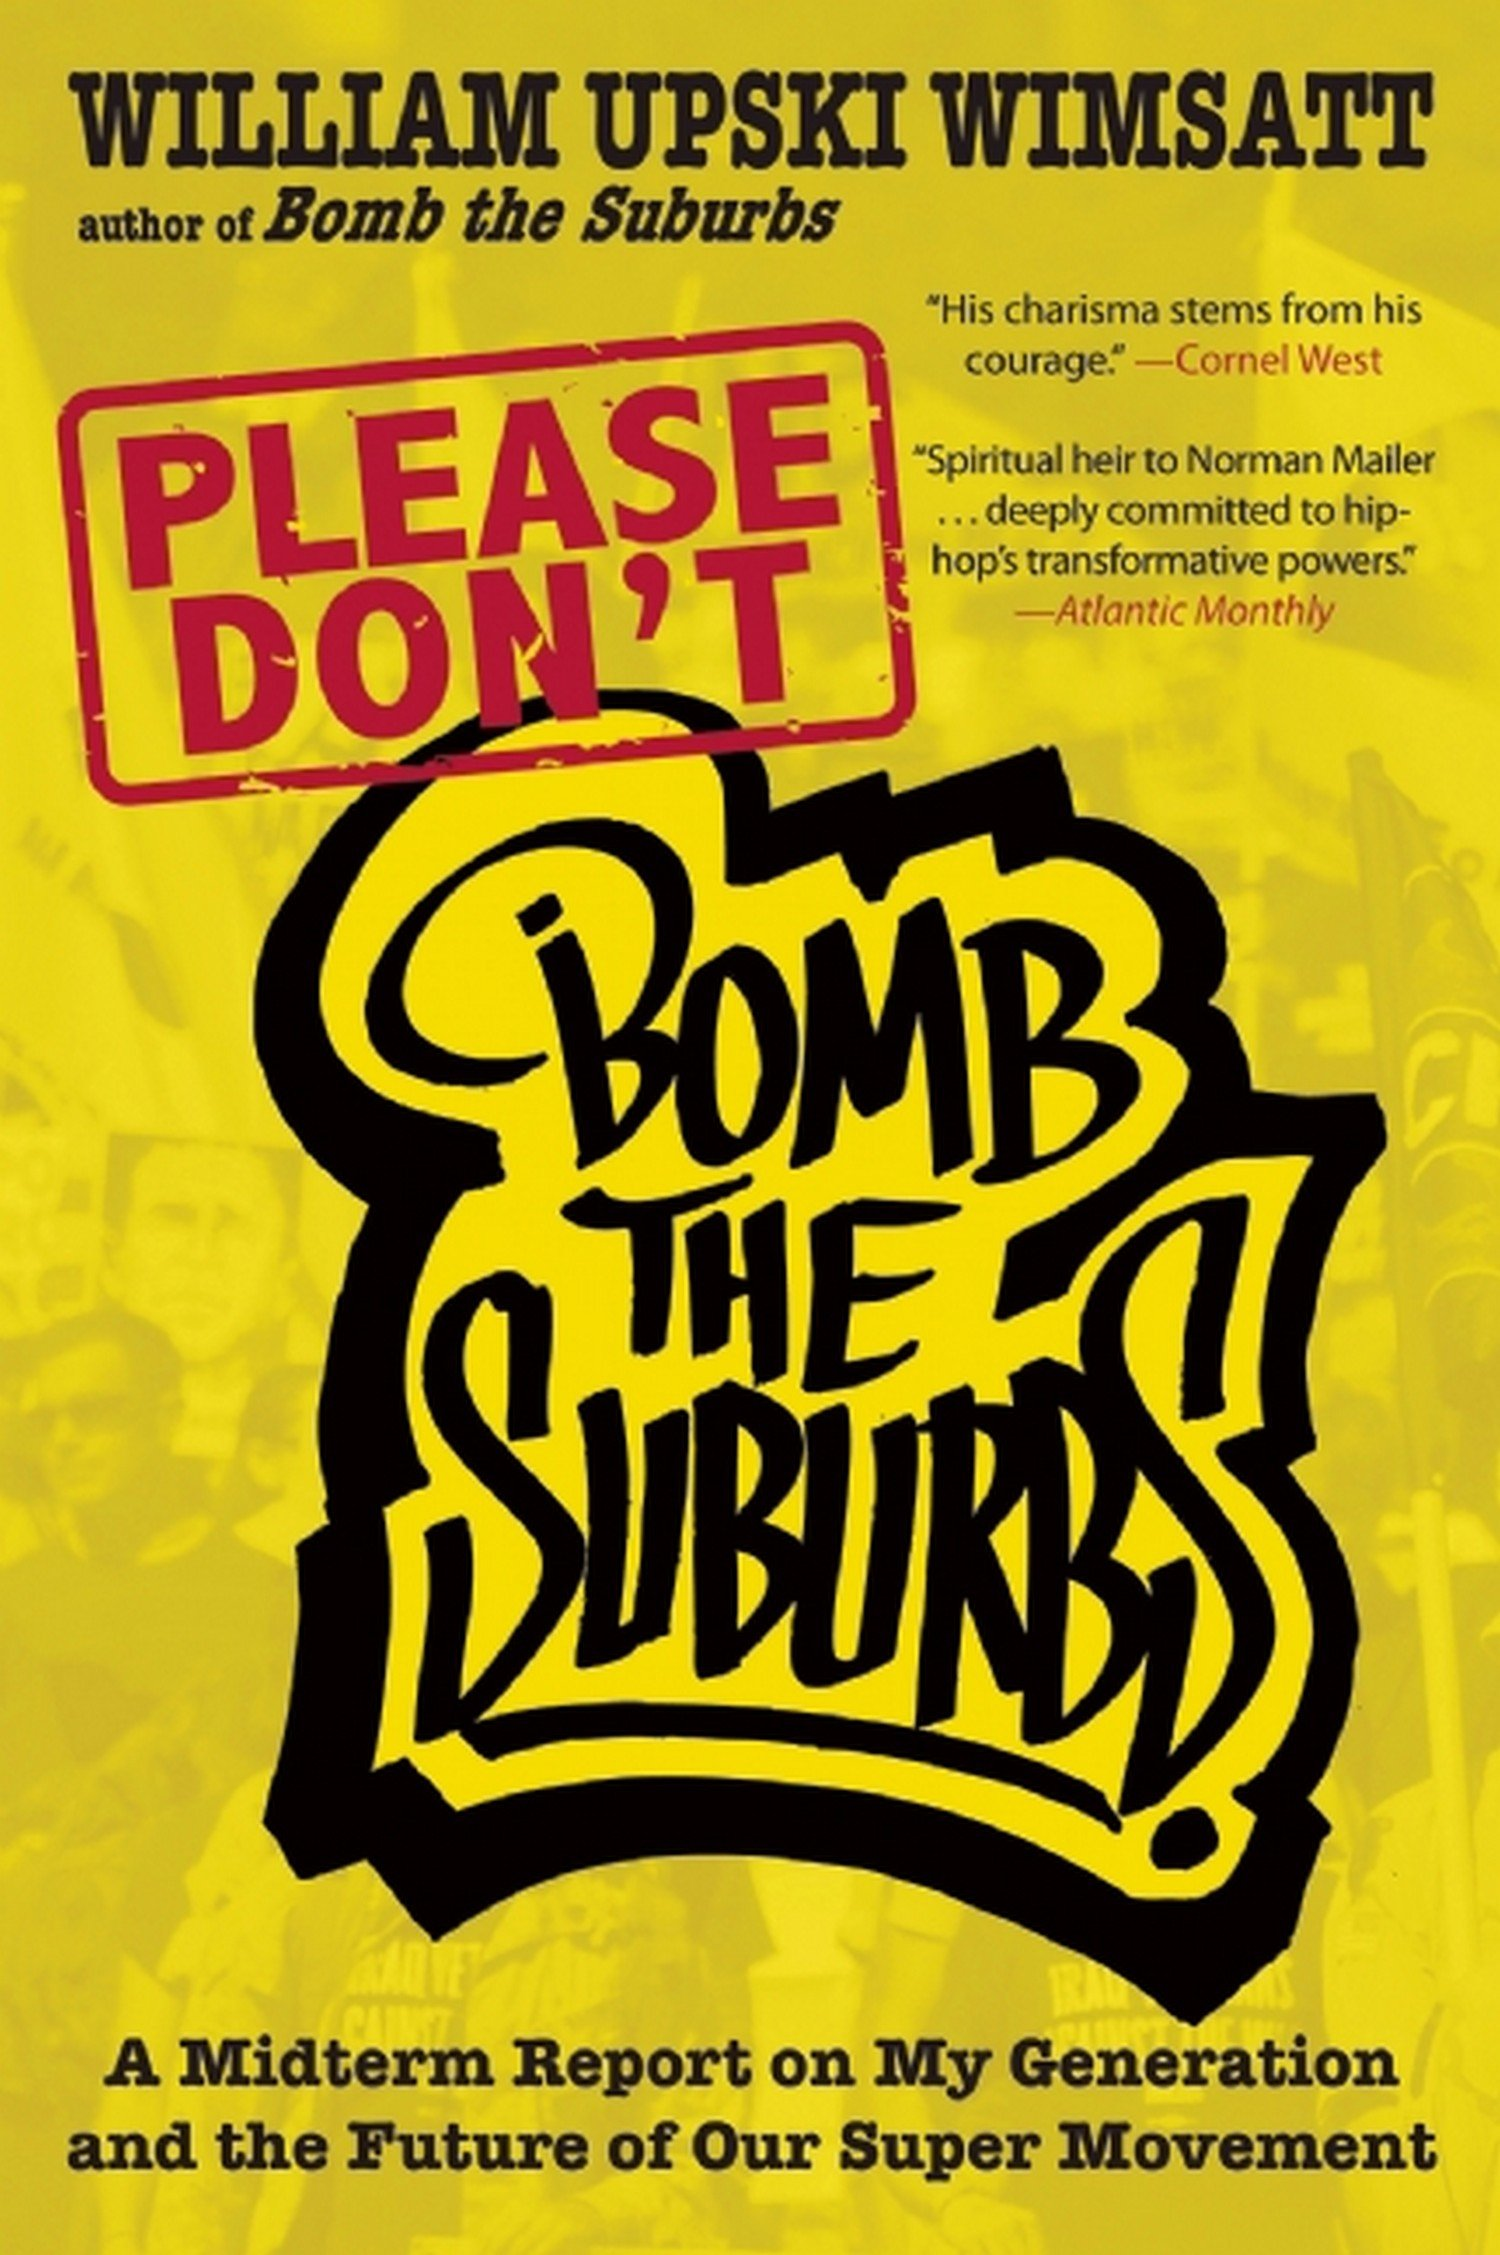 Please Don't Bomb the Suburbs: A Midterm Report on My Generation and the  Future of Our Super Movement: William Upski Wimsatt: 9781936070596:  Amazon.com: ...